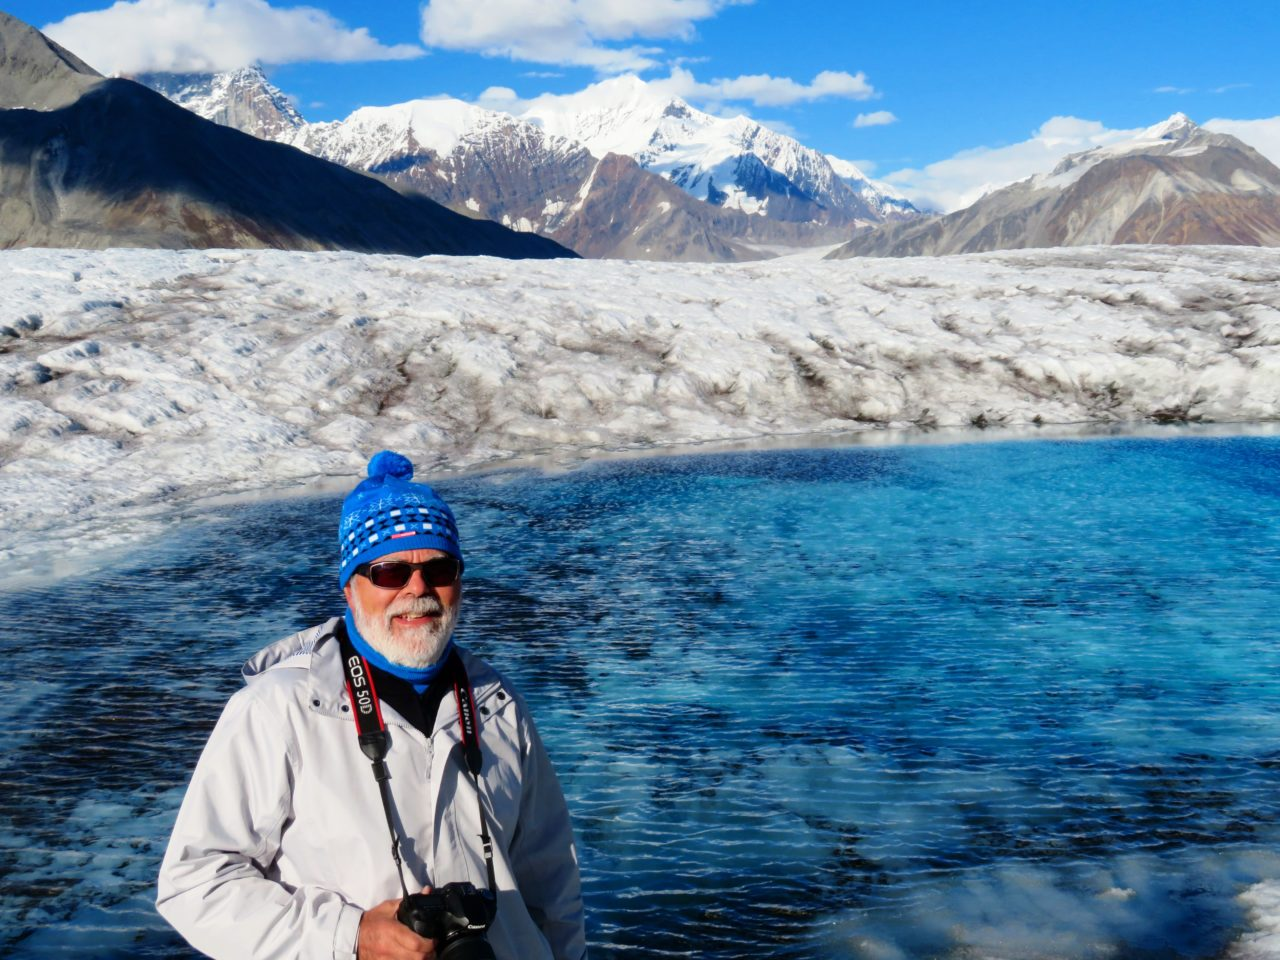 Glacier walk during our Alaska Cruise with Princess Cruises